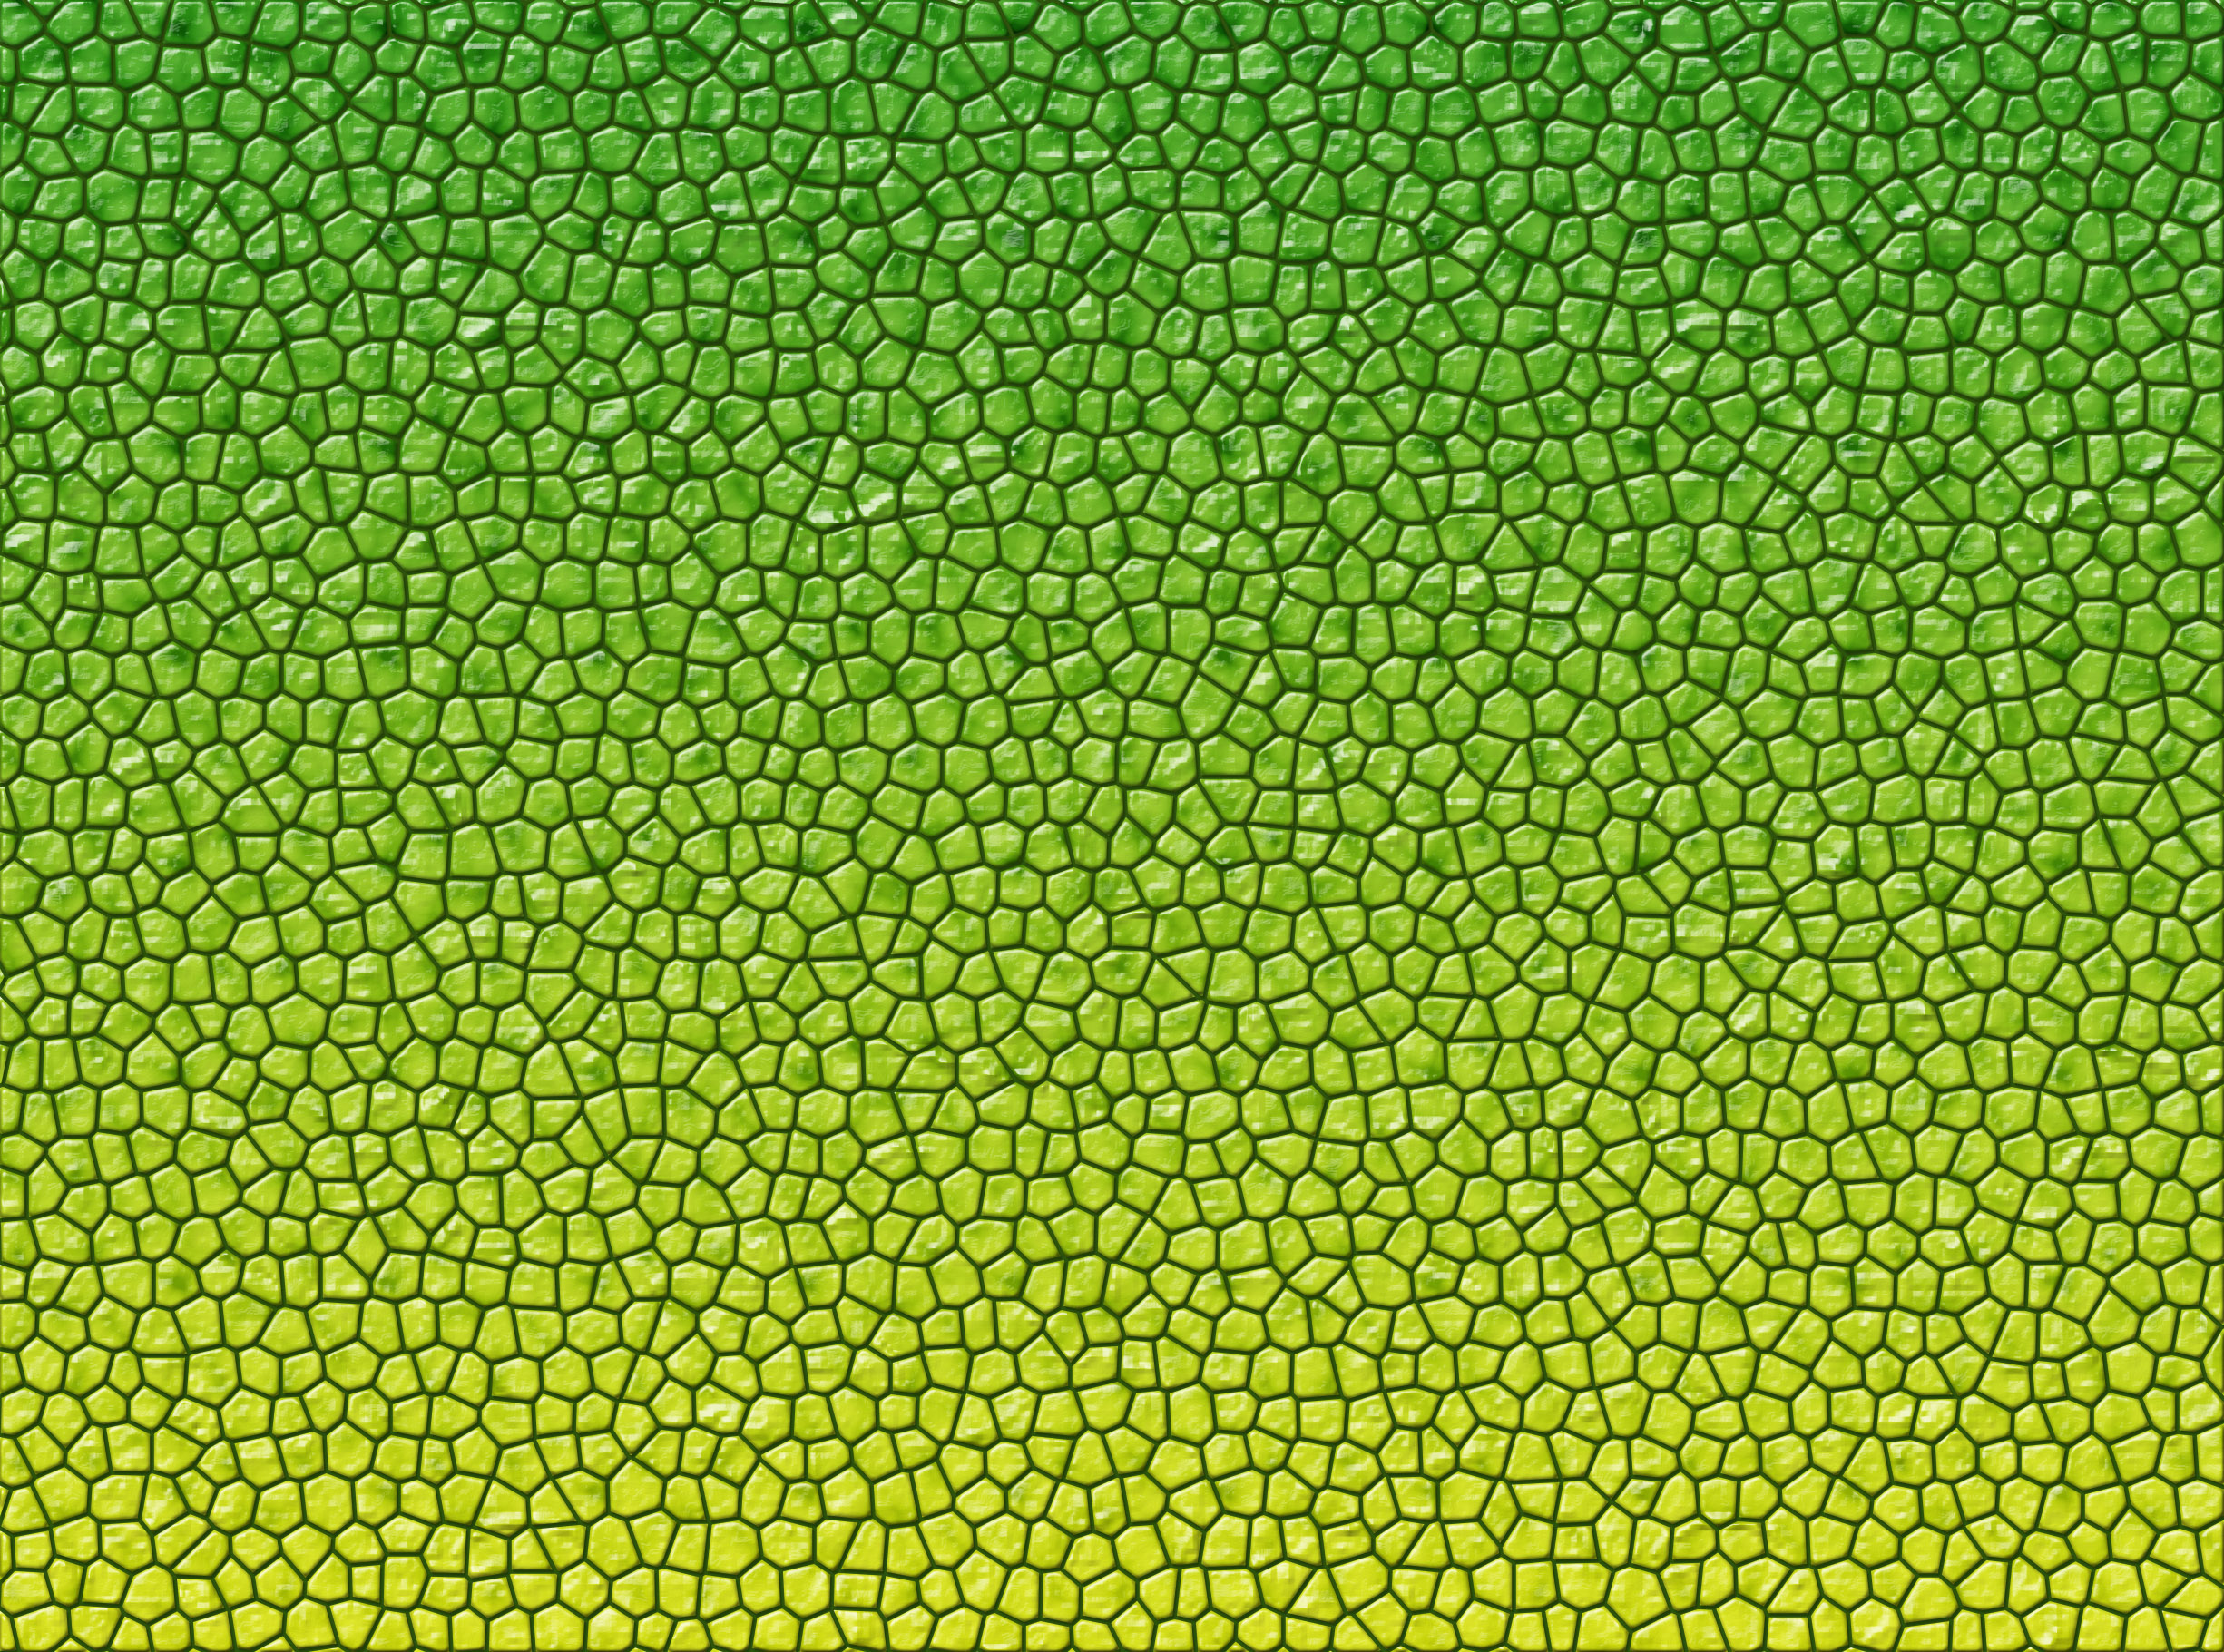 Reptile skin texture, Dragon, Green, Reptile, Reptiles, HQ Photo